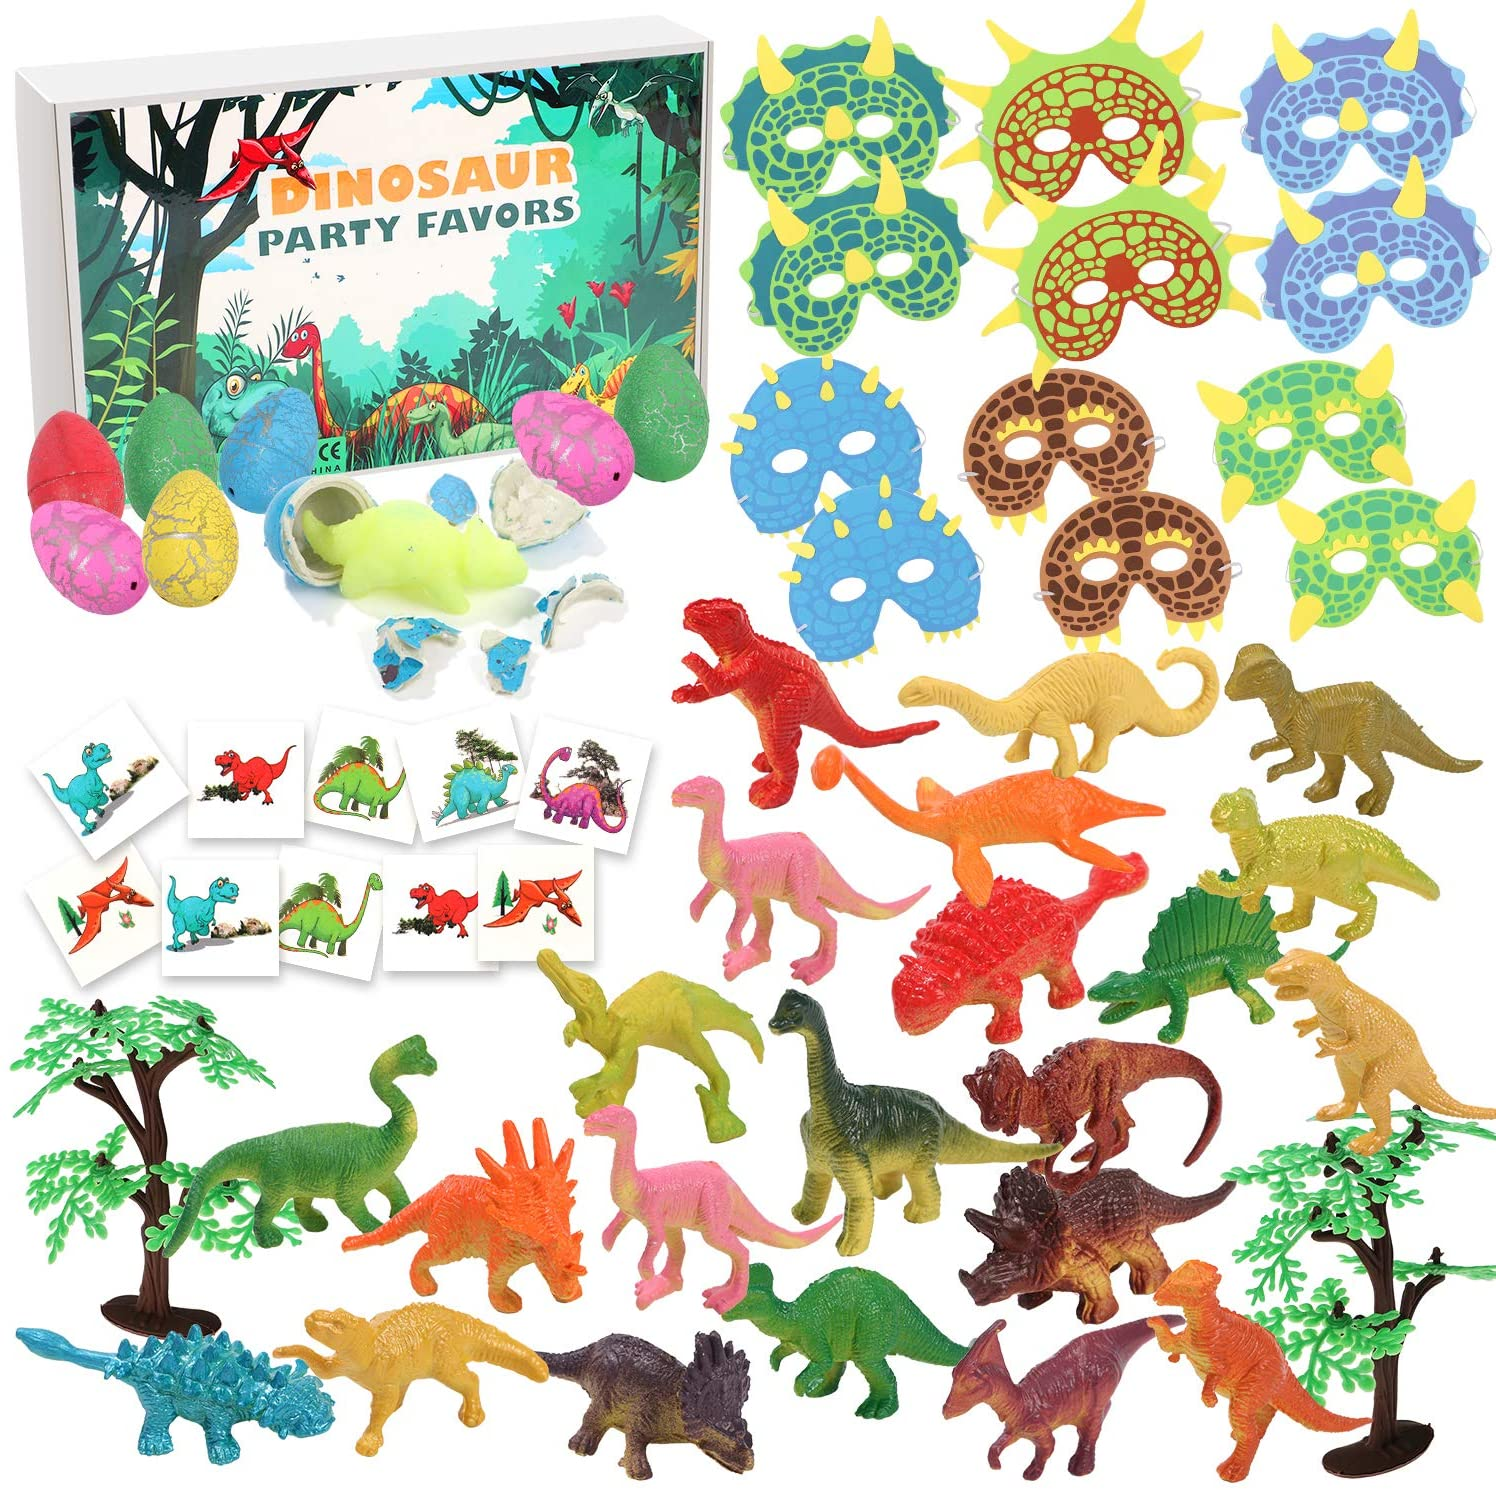 jouets figurines pinata dinosaure masque oeufs fossile